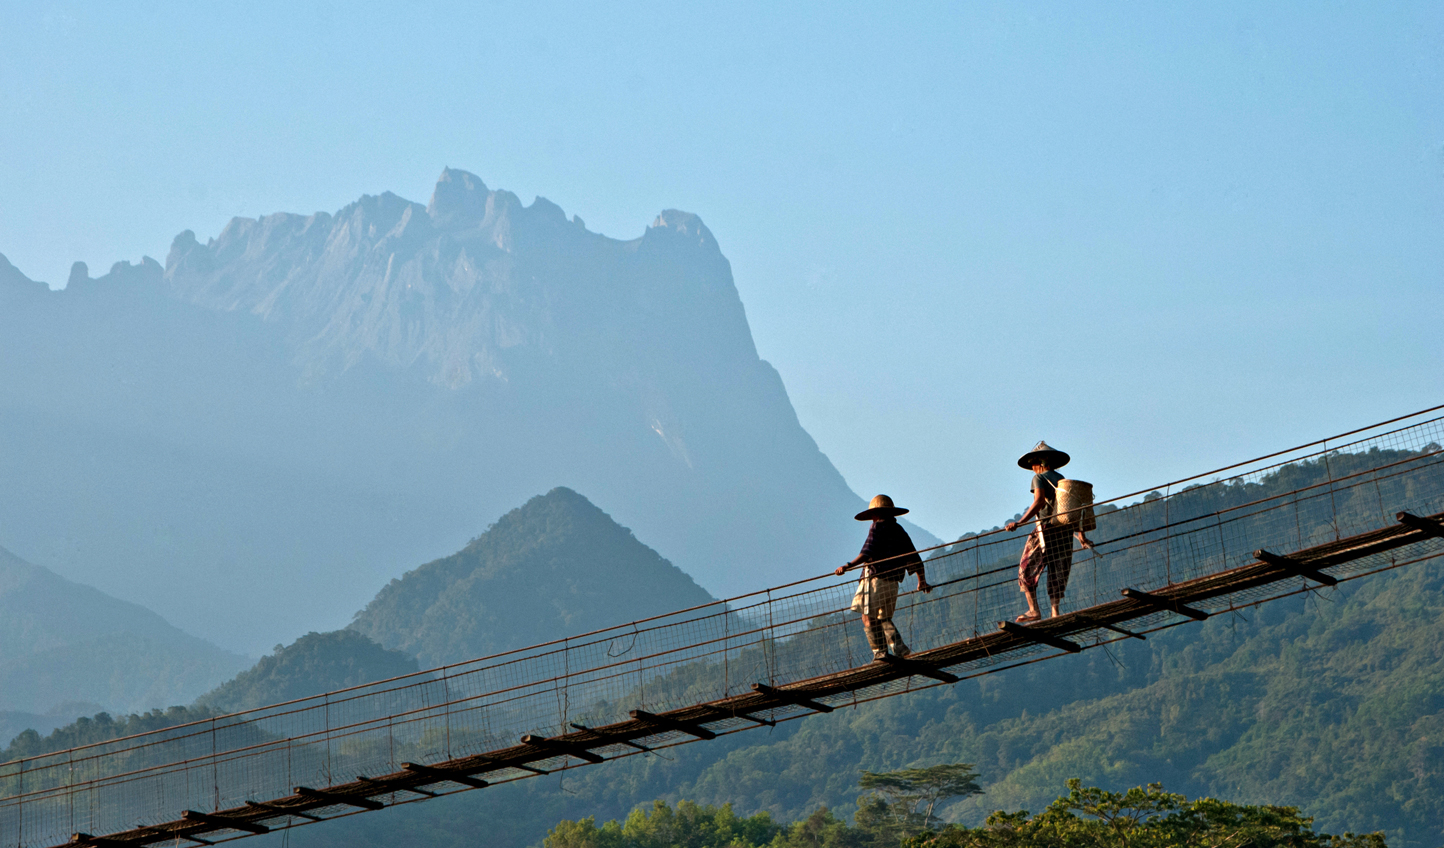 Reward yourself with white-sand beaches after hiking to the top of Mount Kinabalu